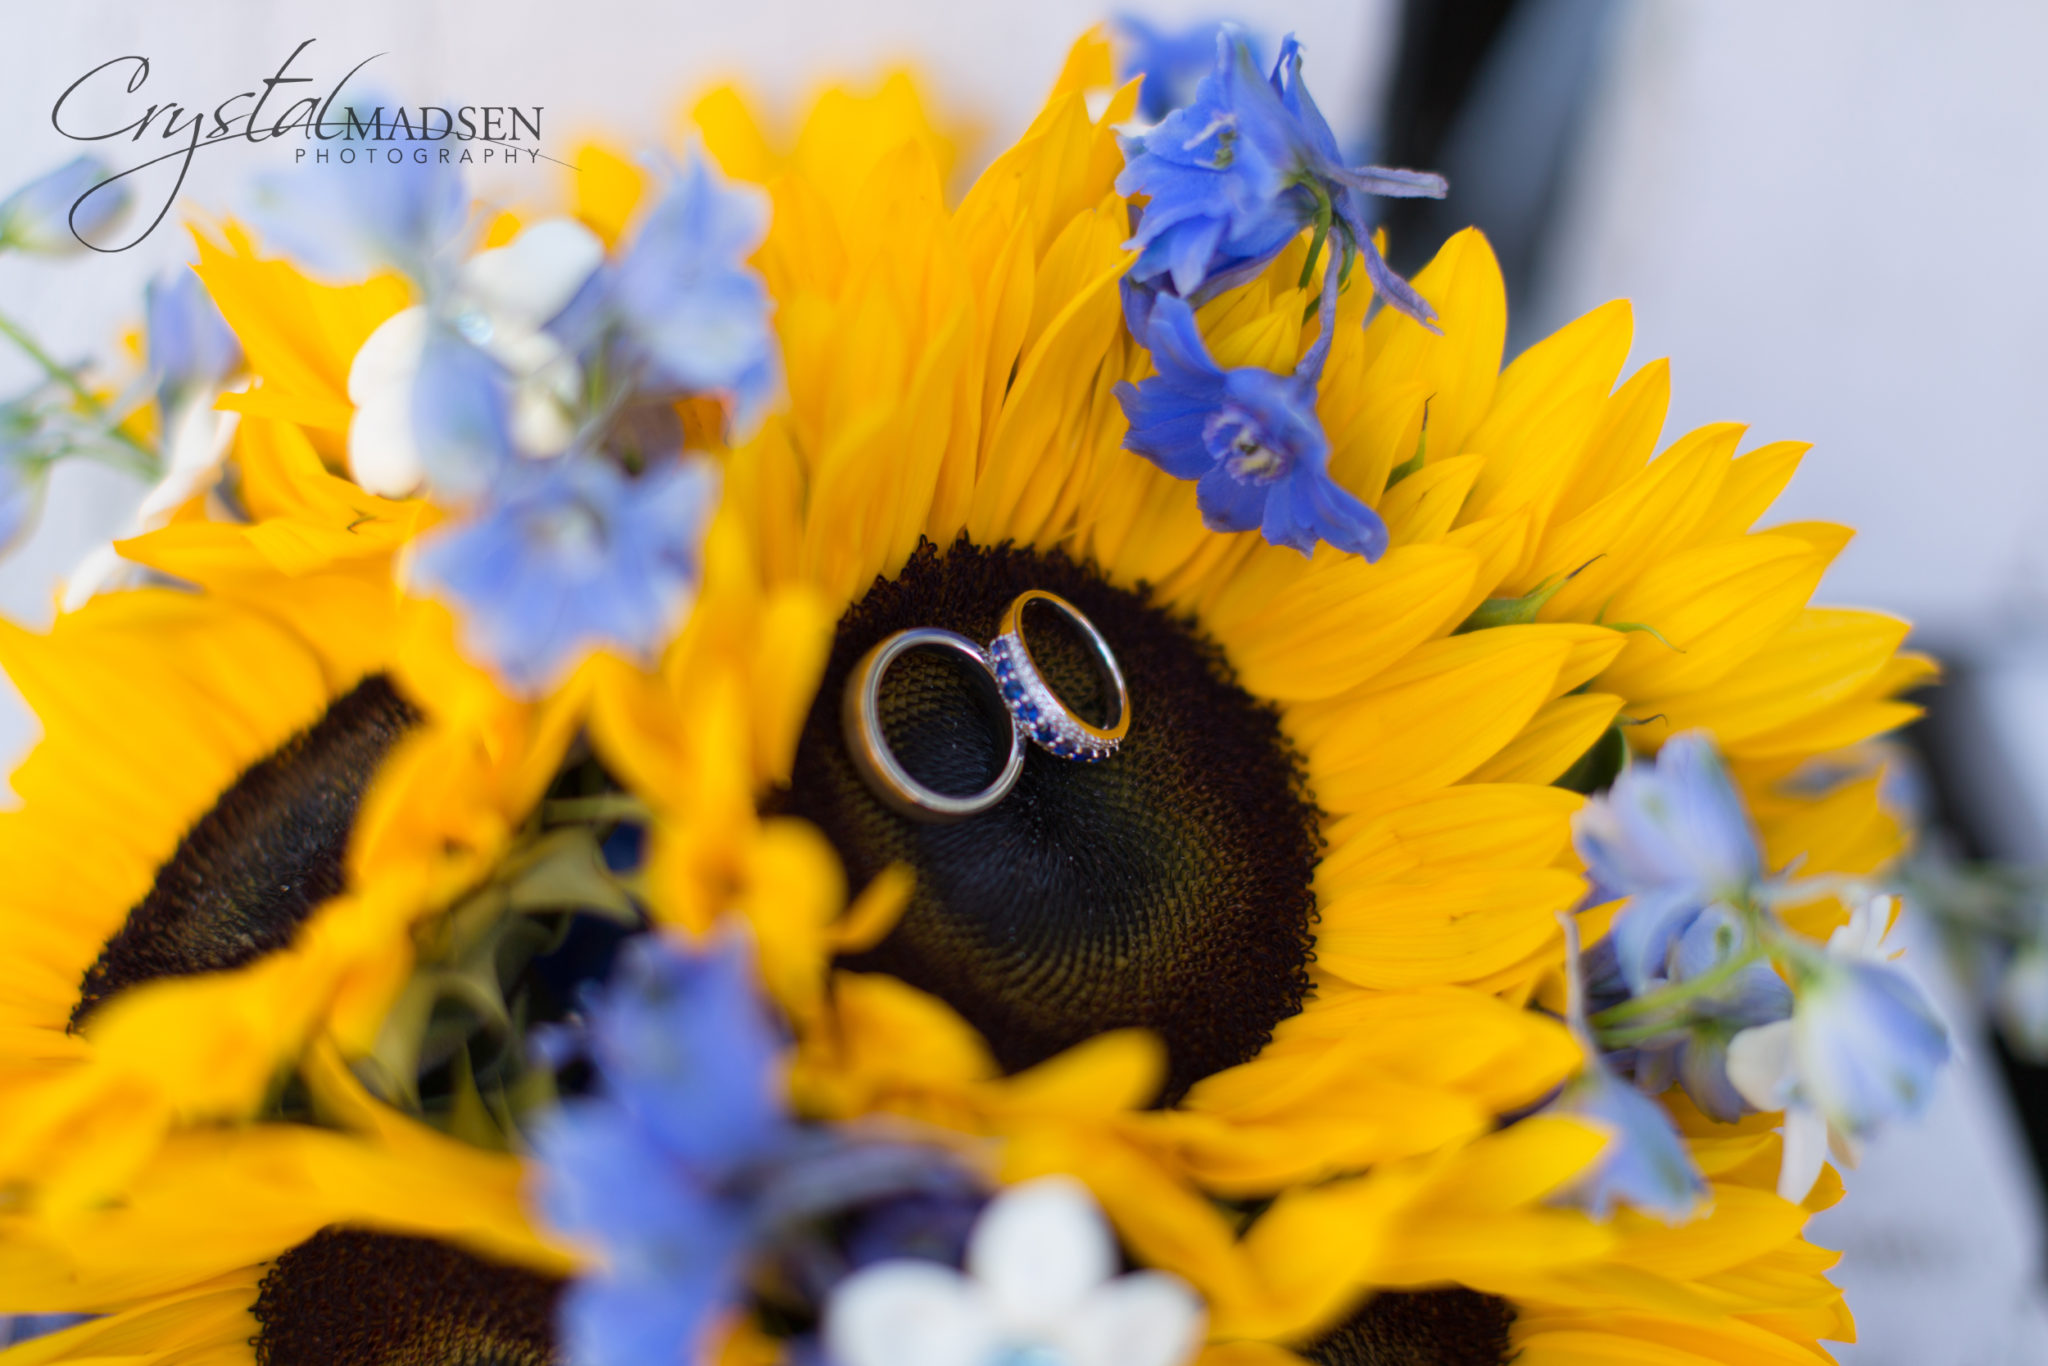 Wedding rings in a sunflower